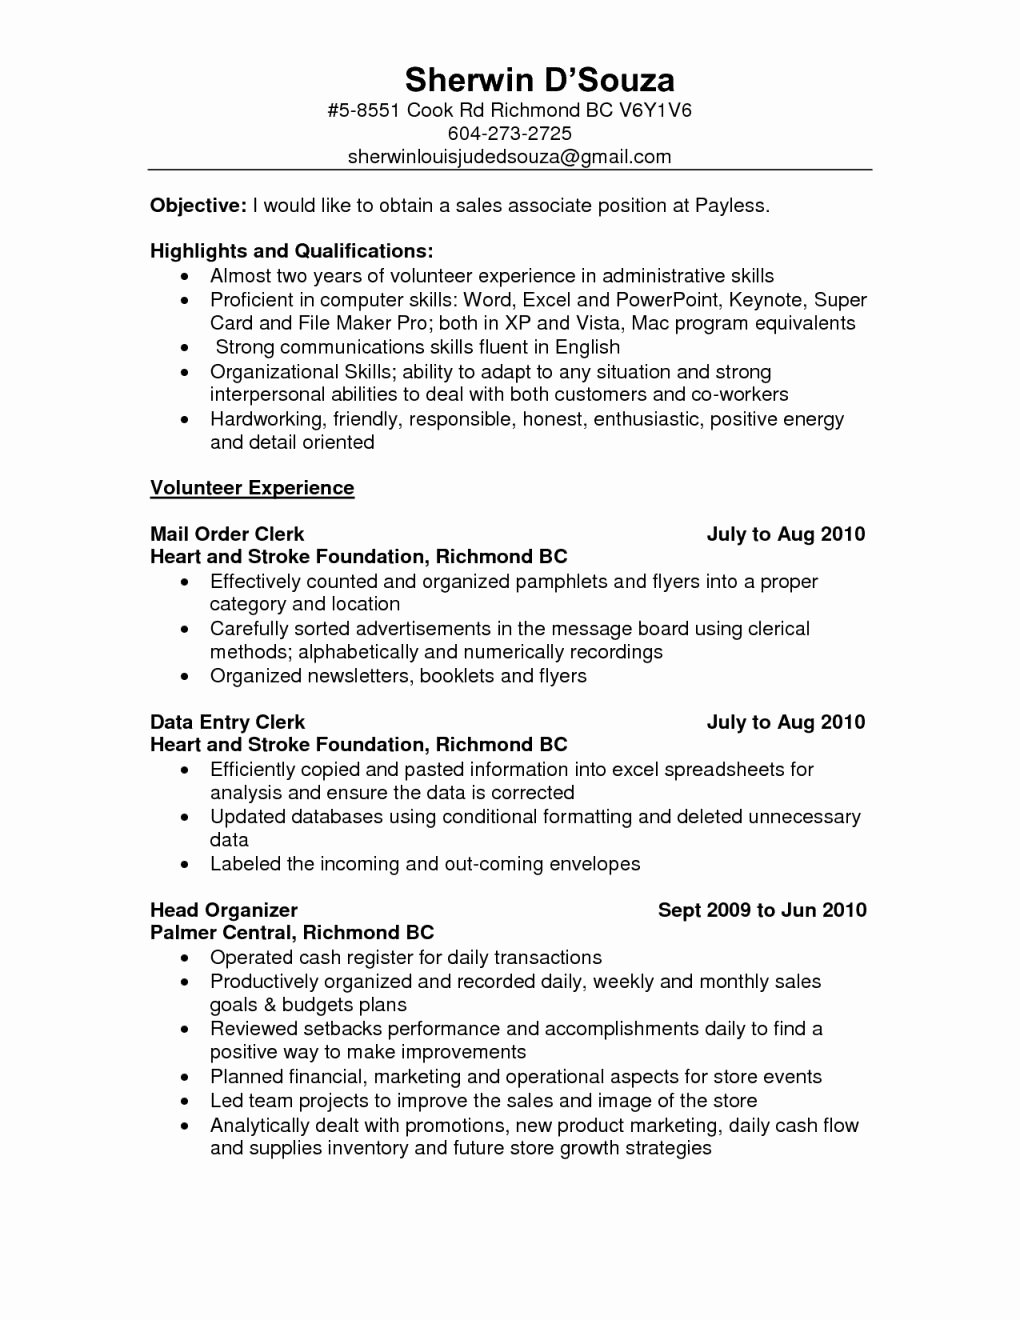 Resume Retail Sales associate Duties assistant Store